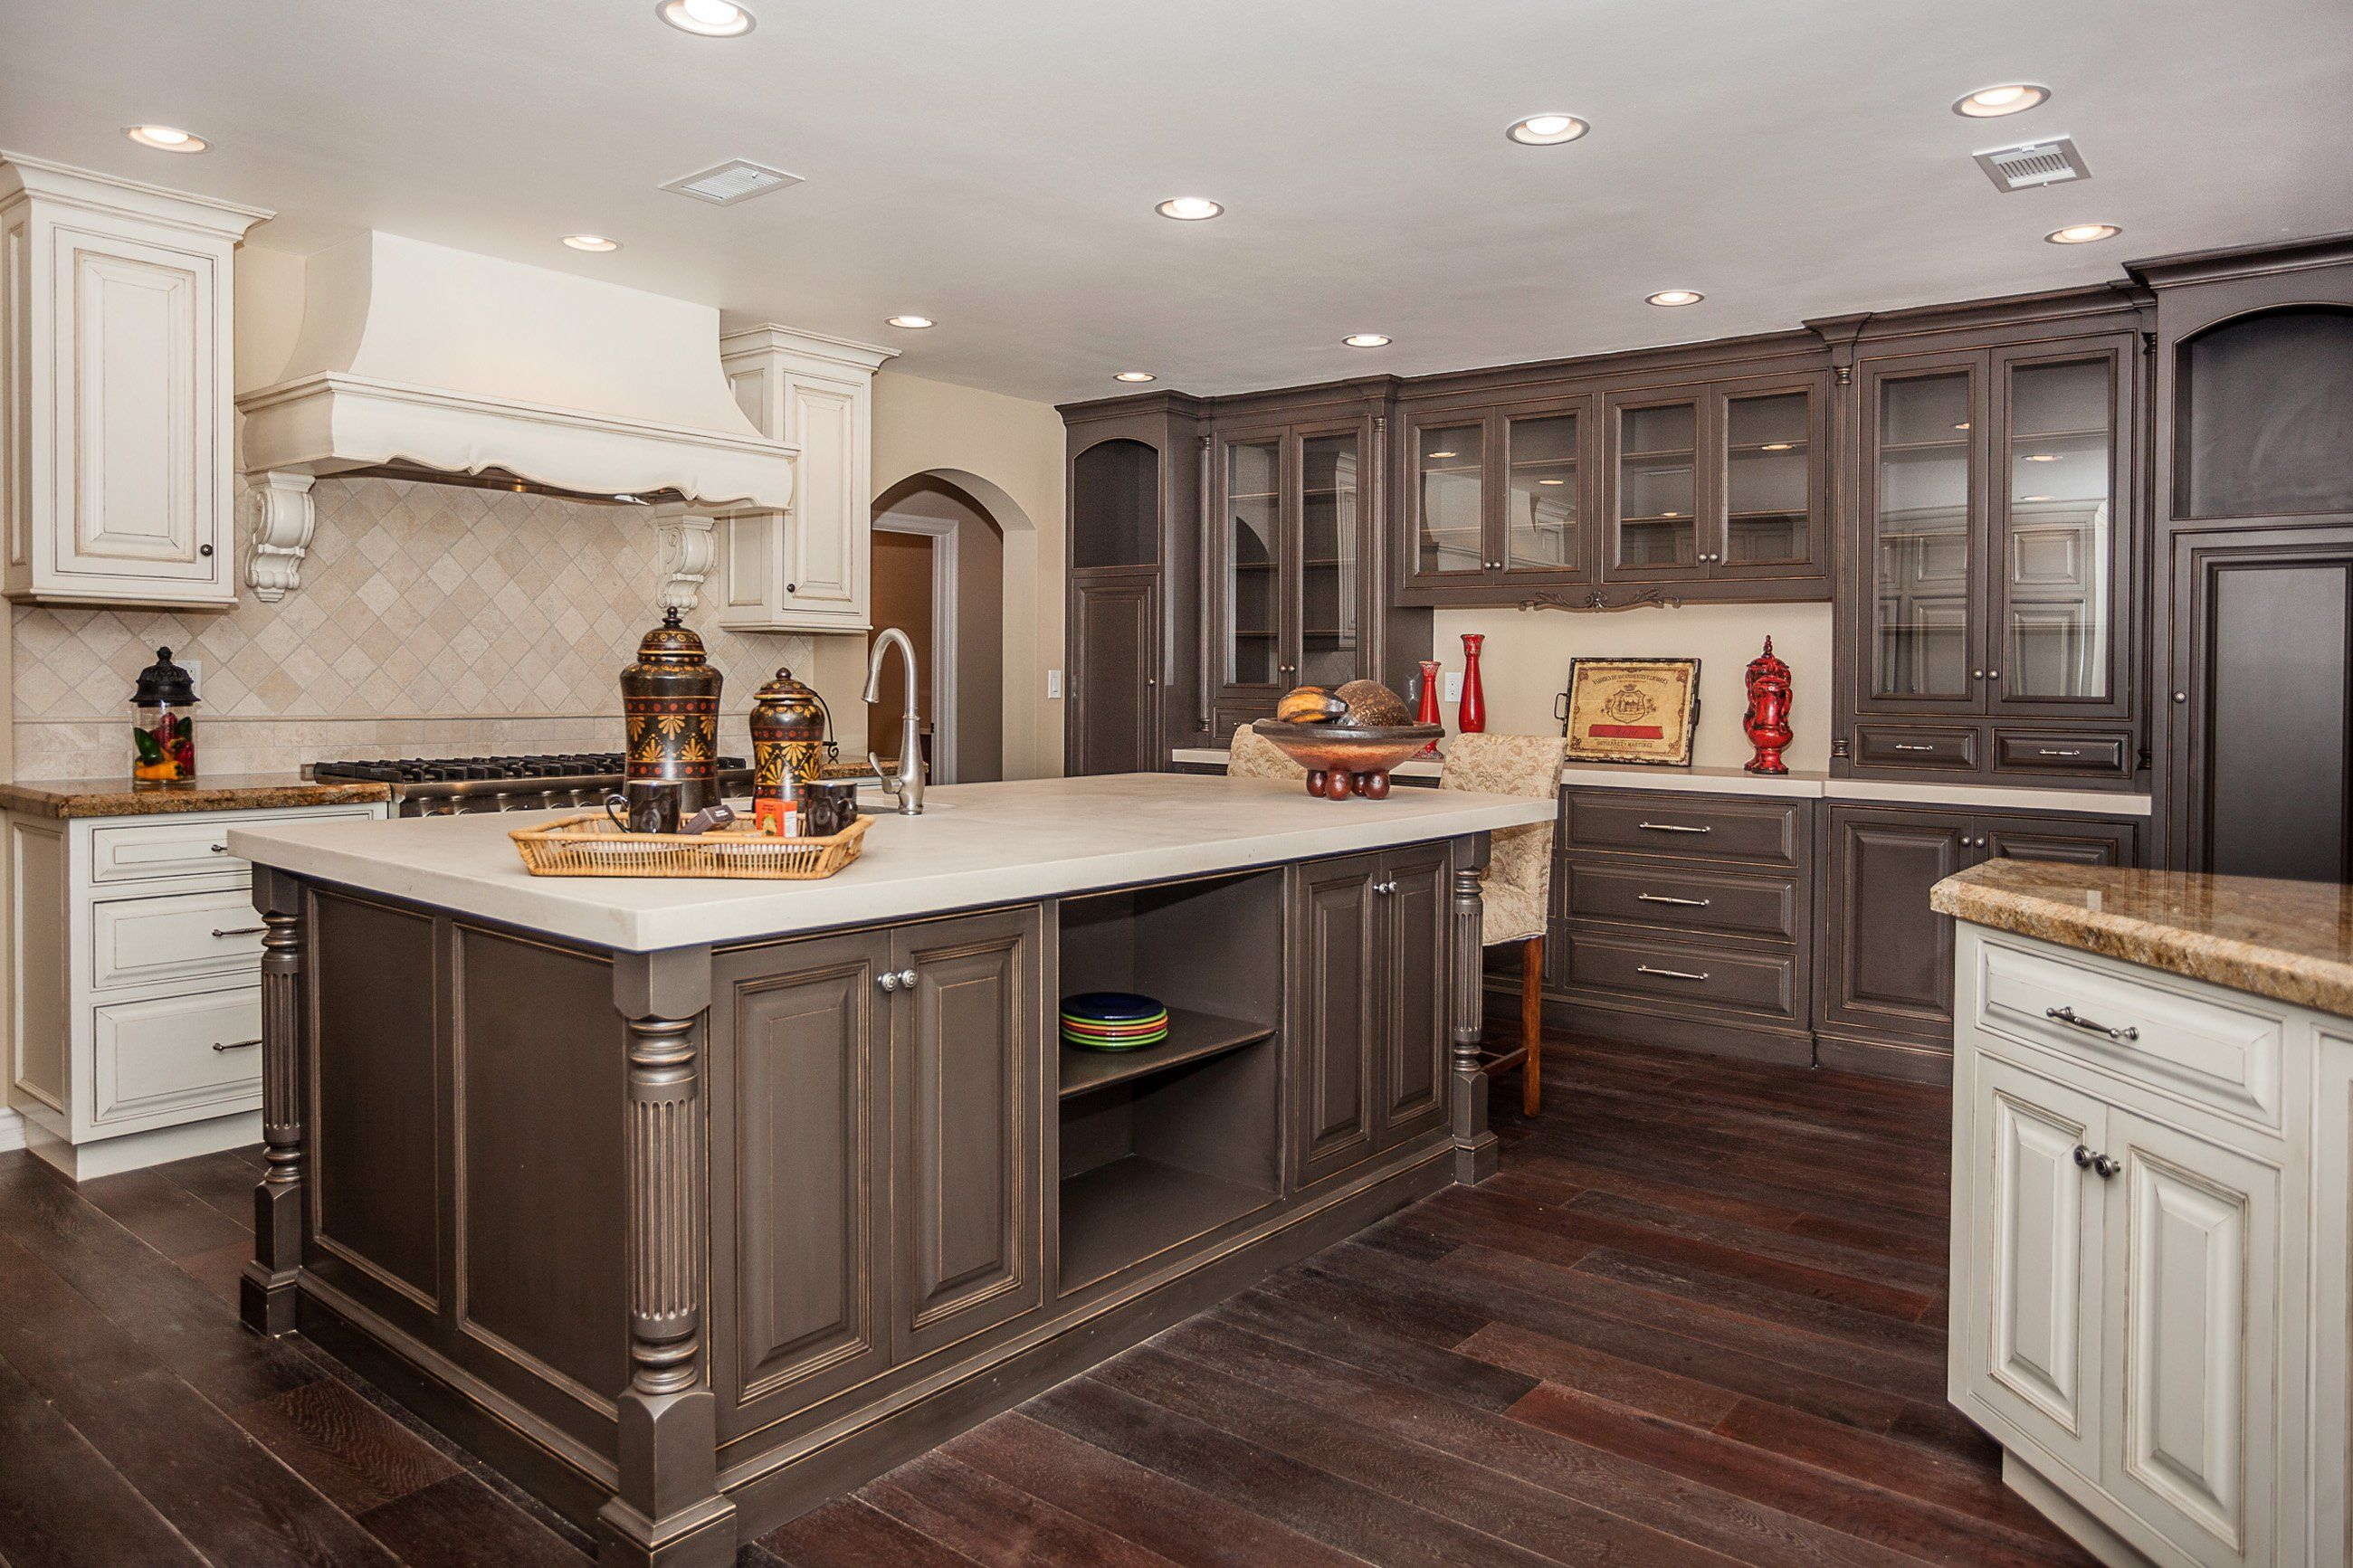 Inspiration Decoration Marvelous Gray Base Painted With White Countertop As Inspiring Two Tone Kitchen Cabinets On Dark Wood Plank Flooring Ideas Deluxe